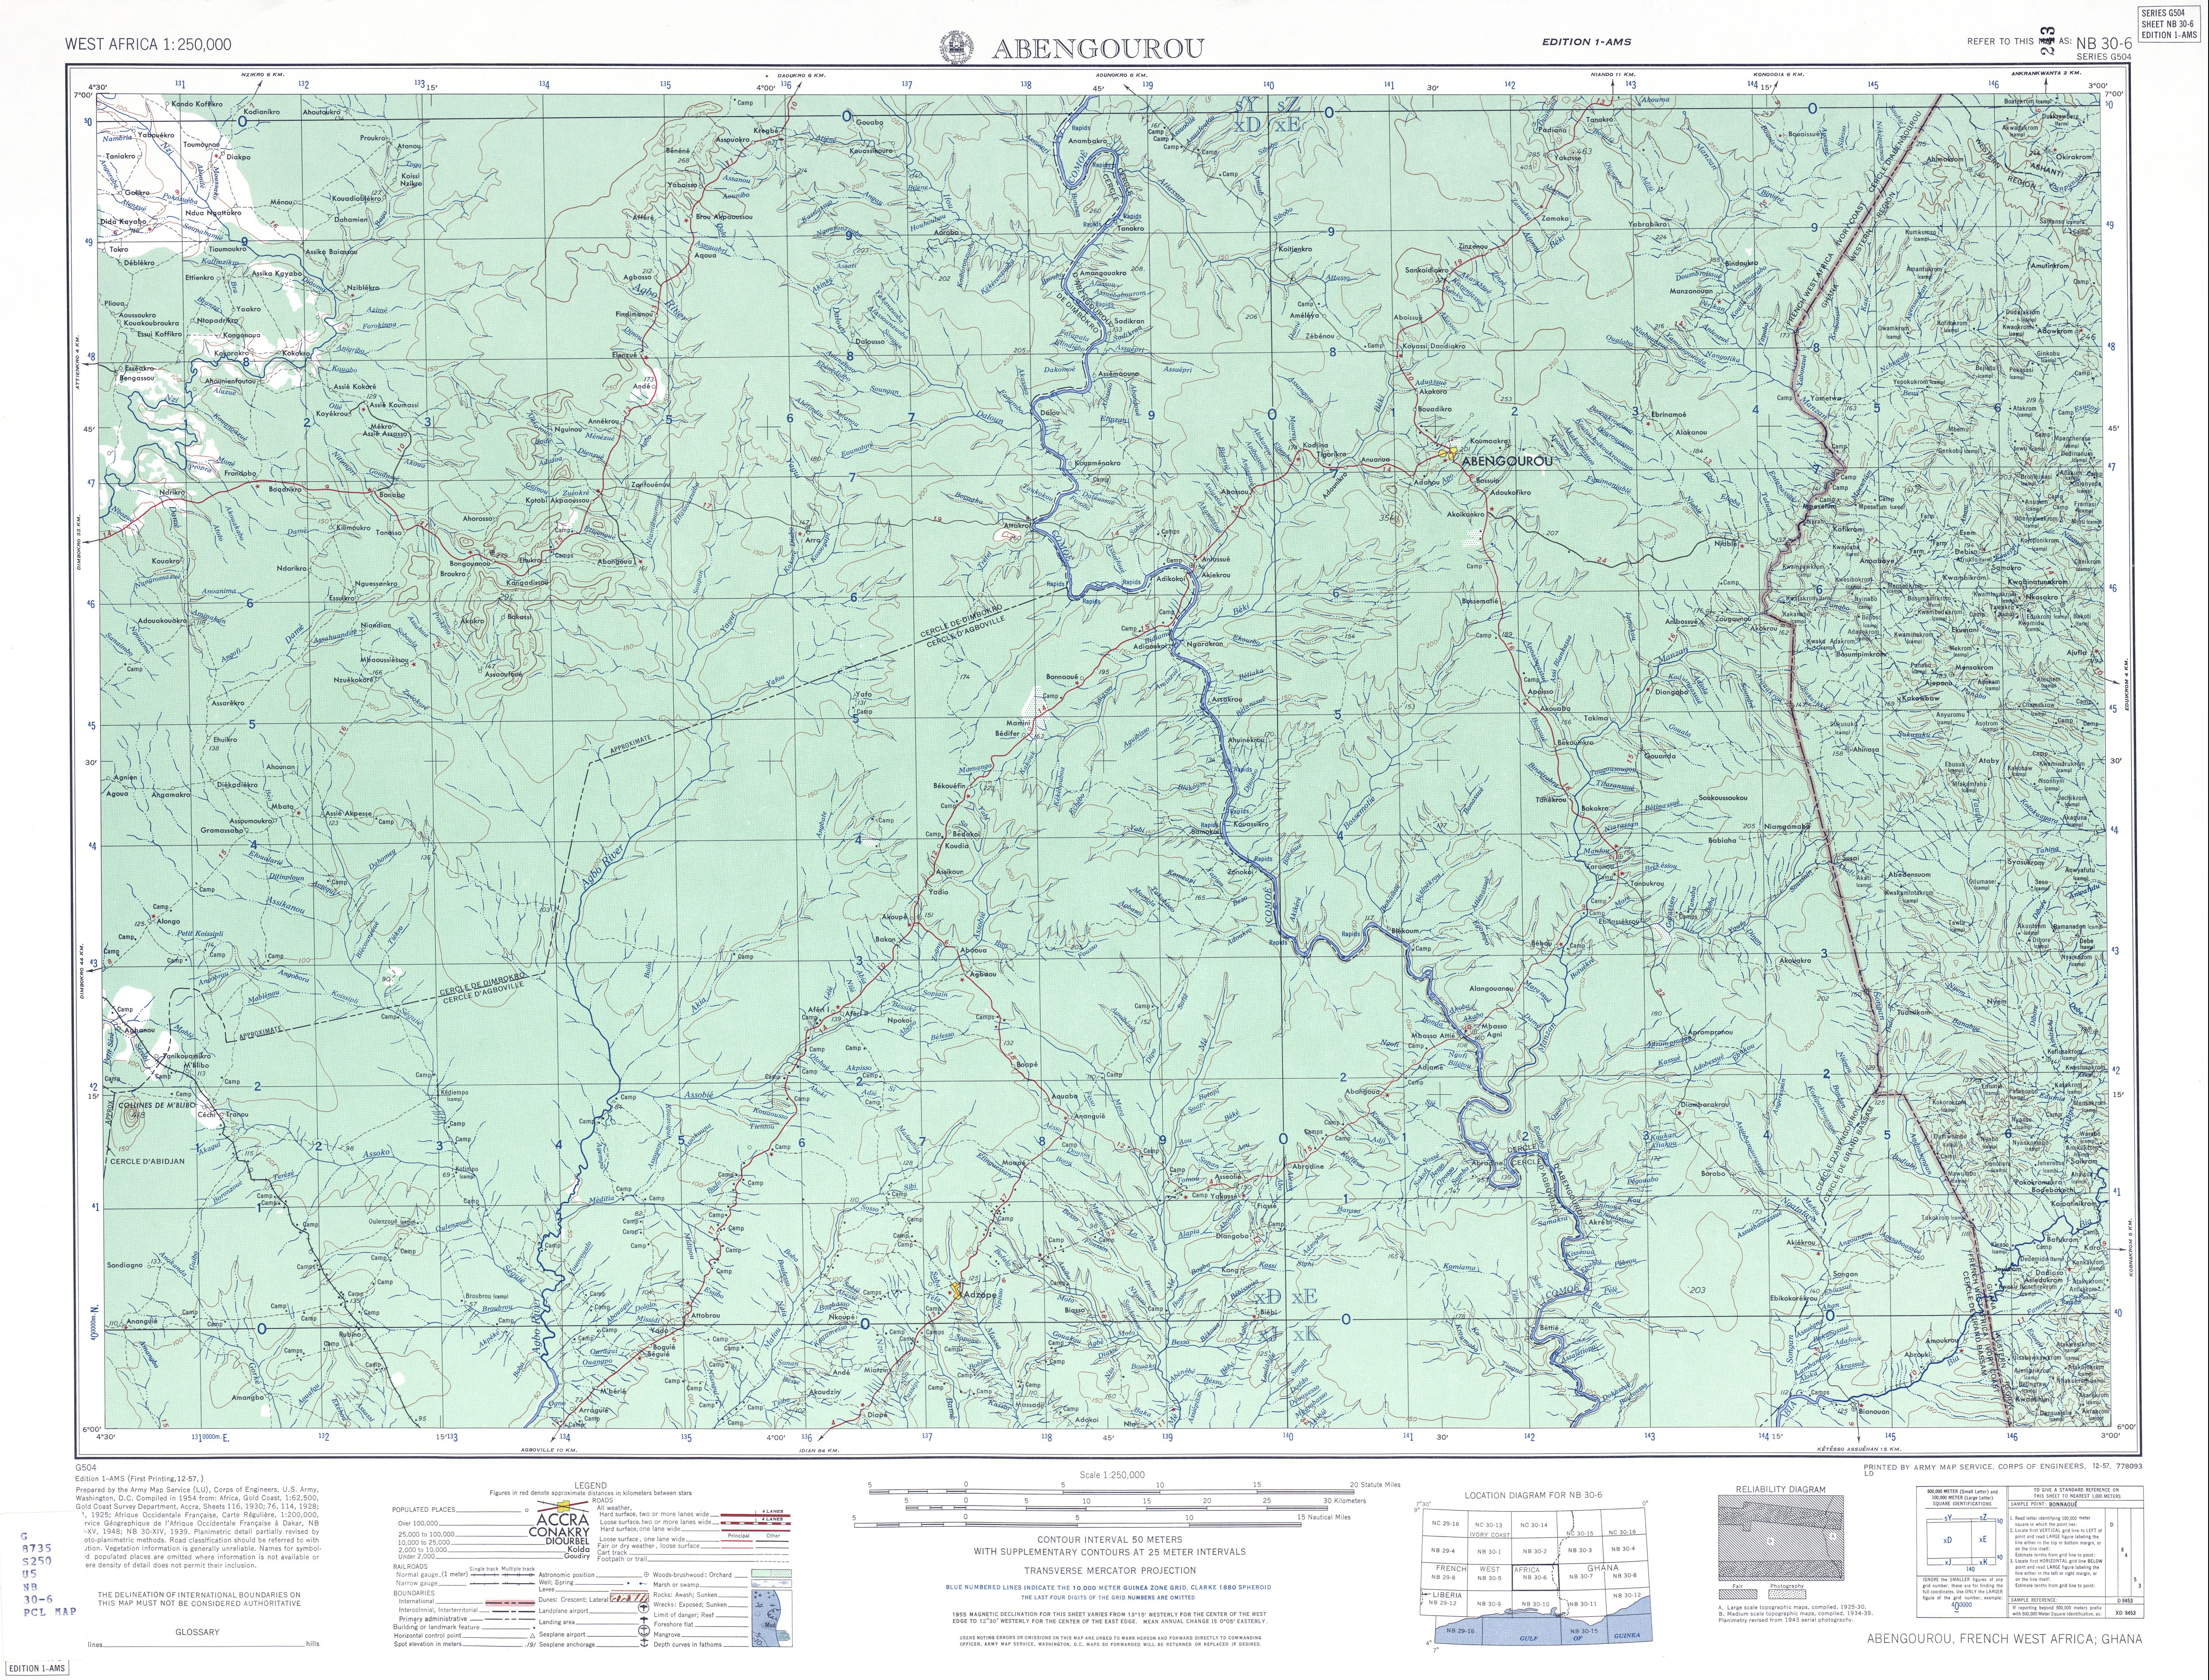 Abengourou Topographic Map Sheet, Western Africa 1955